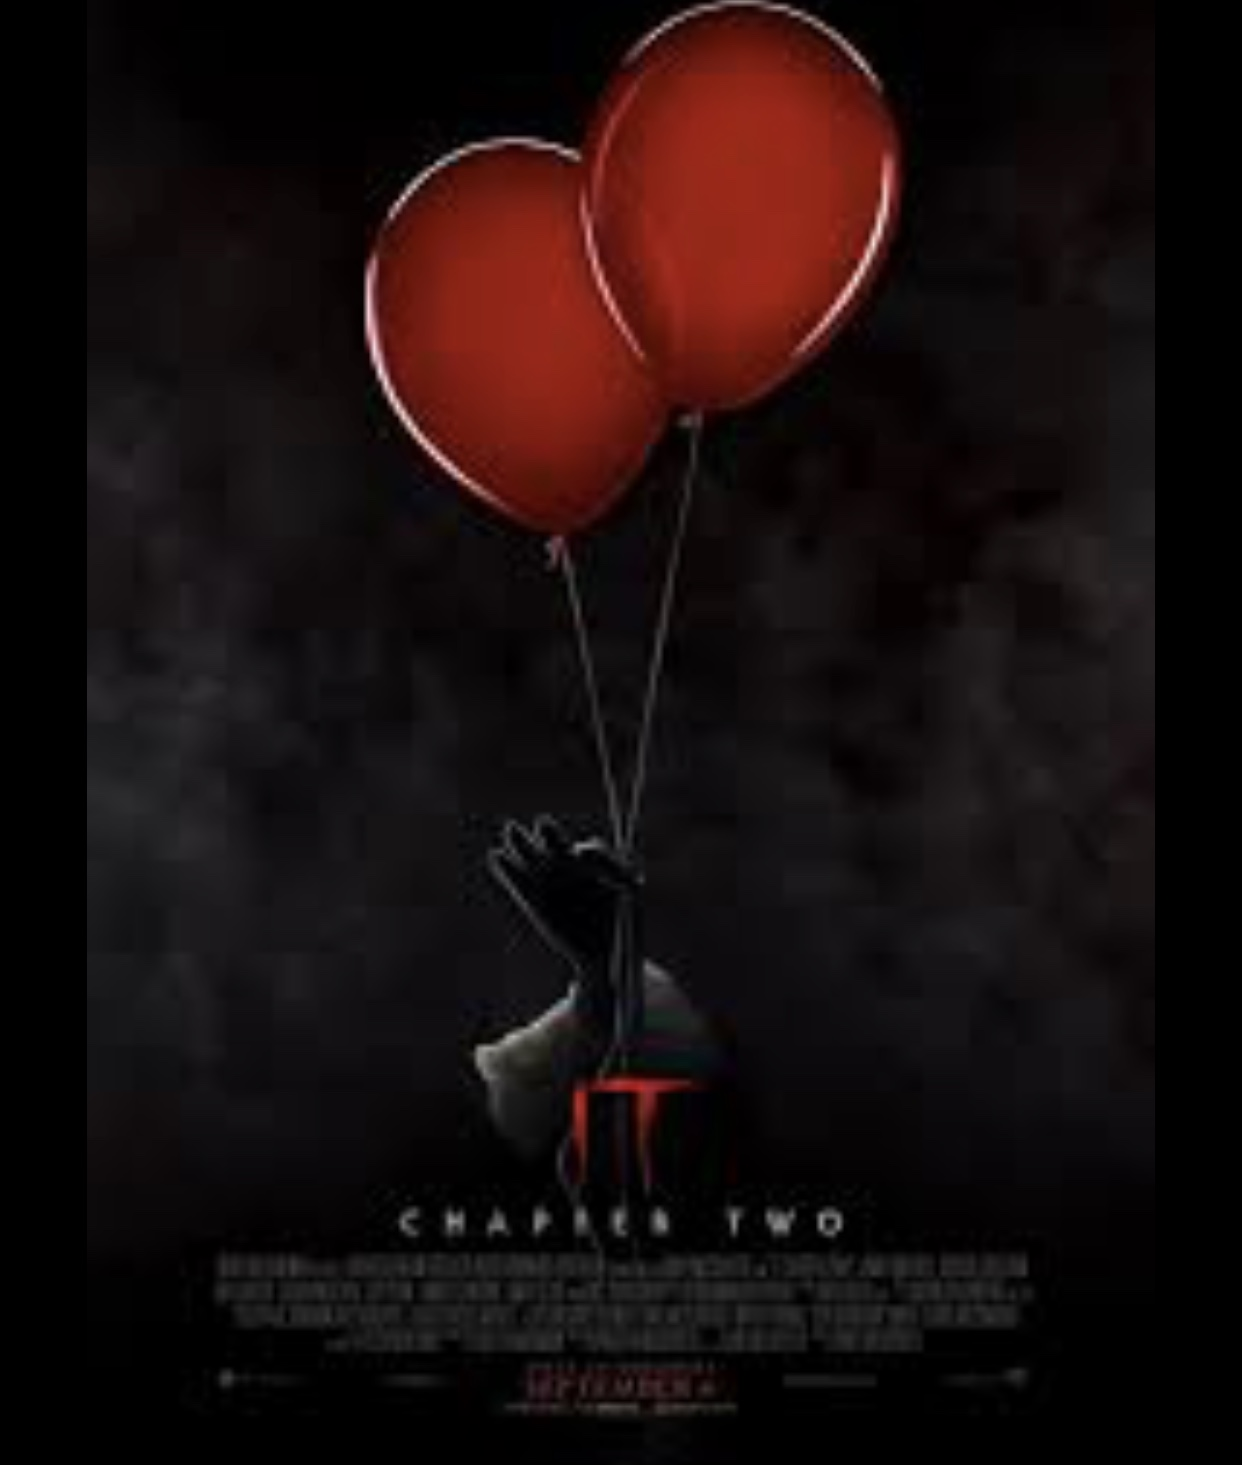 The IT chapter two poster came out two months before the movie came out.  In this picture Pennywise is being lifted off the ground by balloons